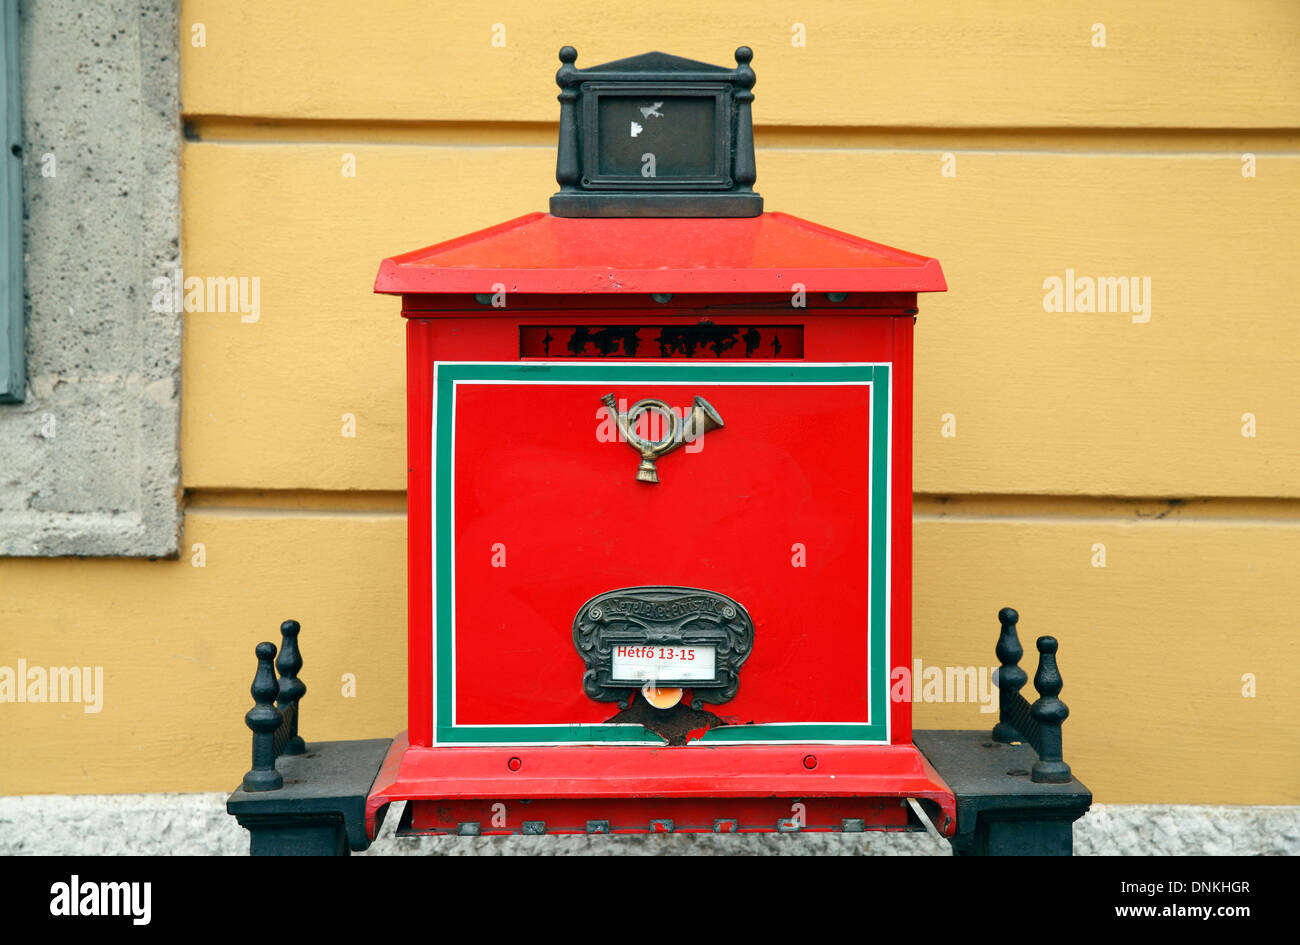 A Red Letter Box of the Magyar Posta Postal Service In Budapest Hungary Stock Photo